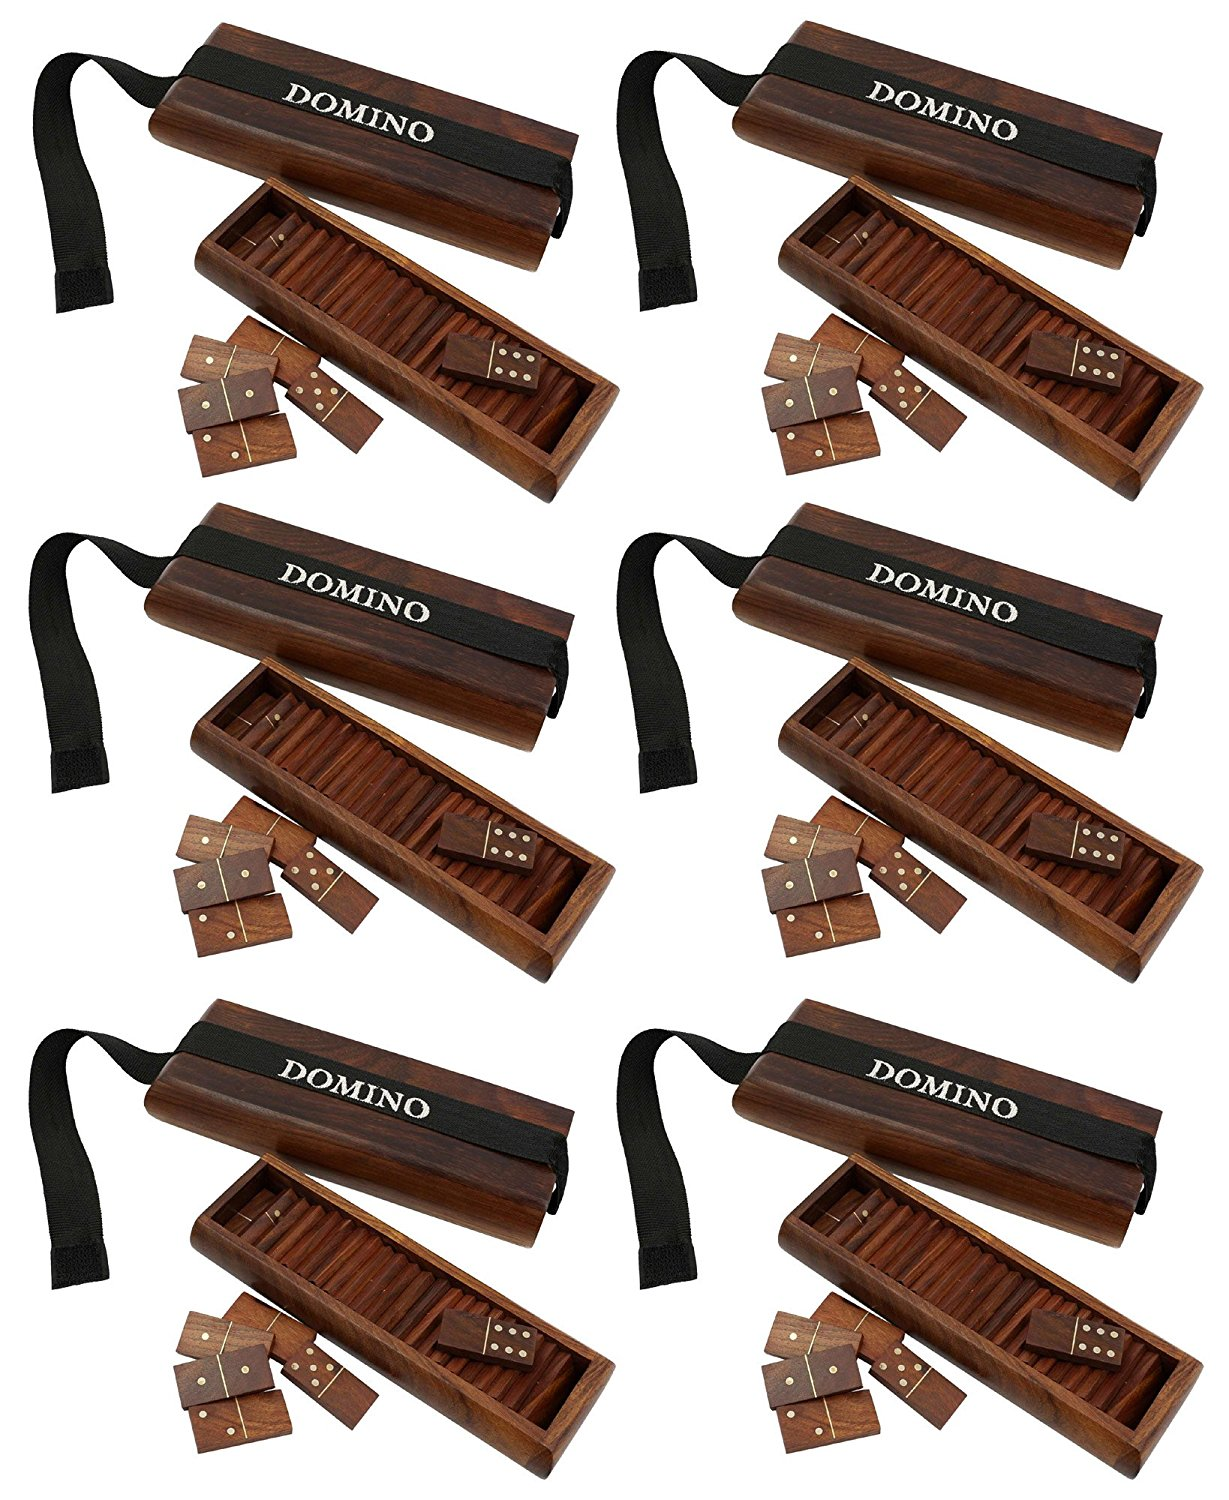 """Lot of 6 - Christmas Games for Adults Indian Wooden Domino Tile Game Tray - Complete Game Set - Travel Domino Set Double - 7"""" x 3"""" x 1.5"""""""